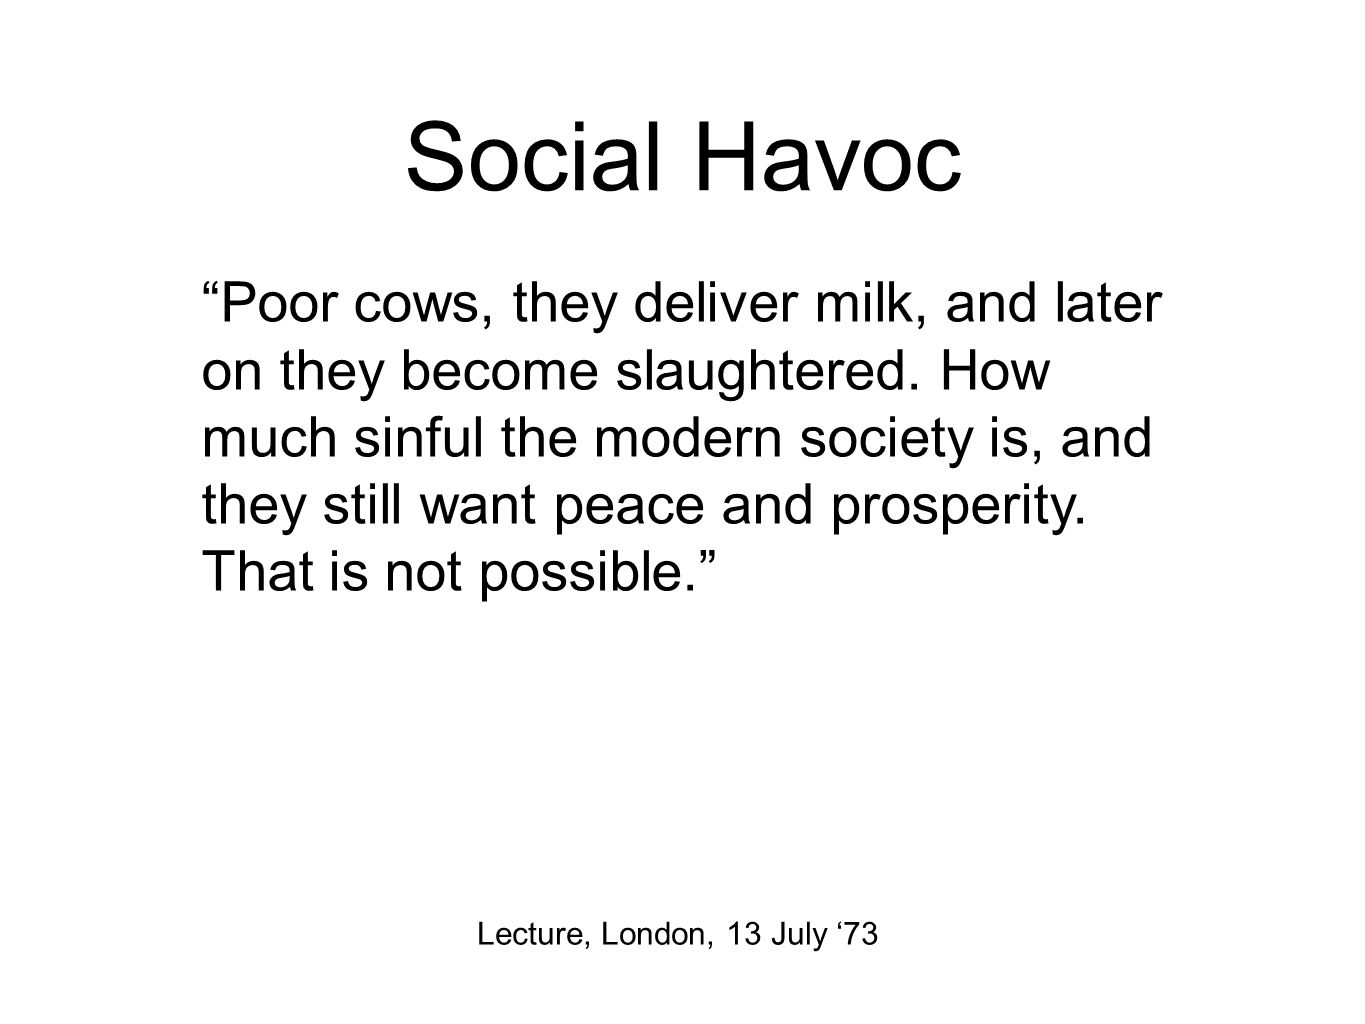 Social Havoc Lecture, London, 13 July '73 Poor cows, they deliver milk, and later on they become slaughtered.